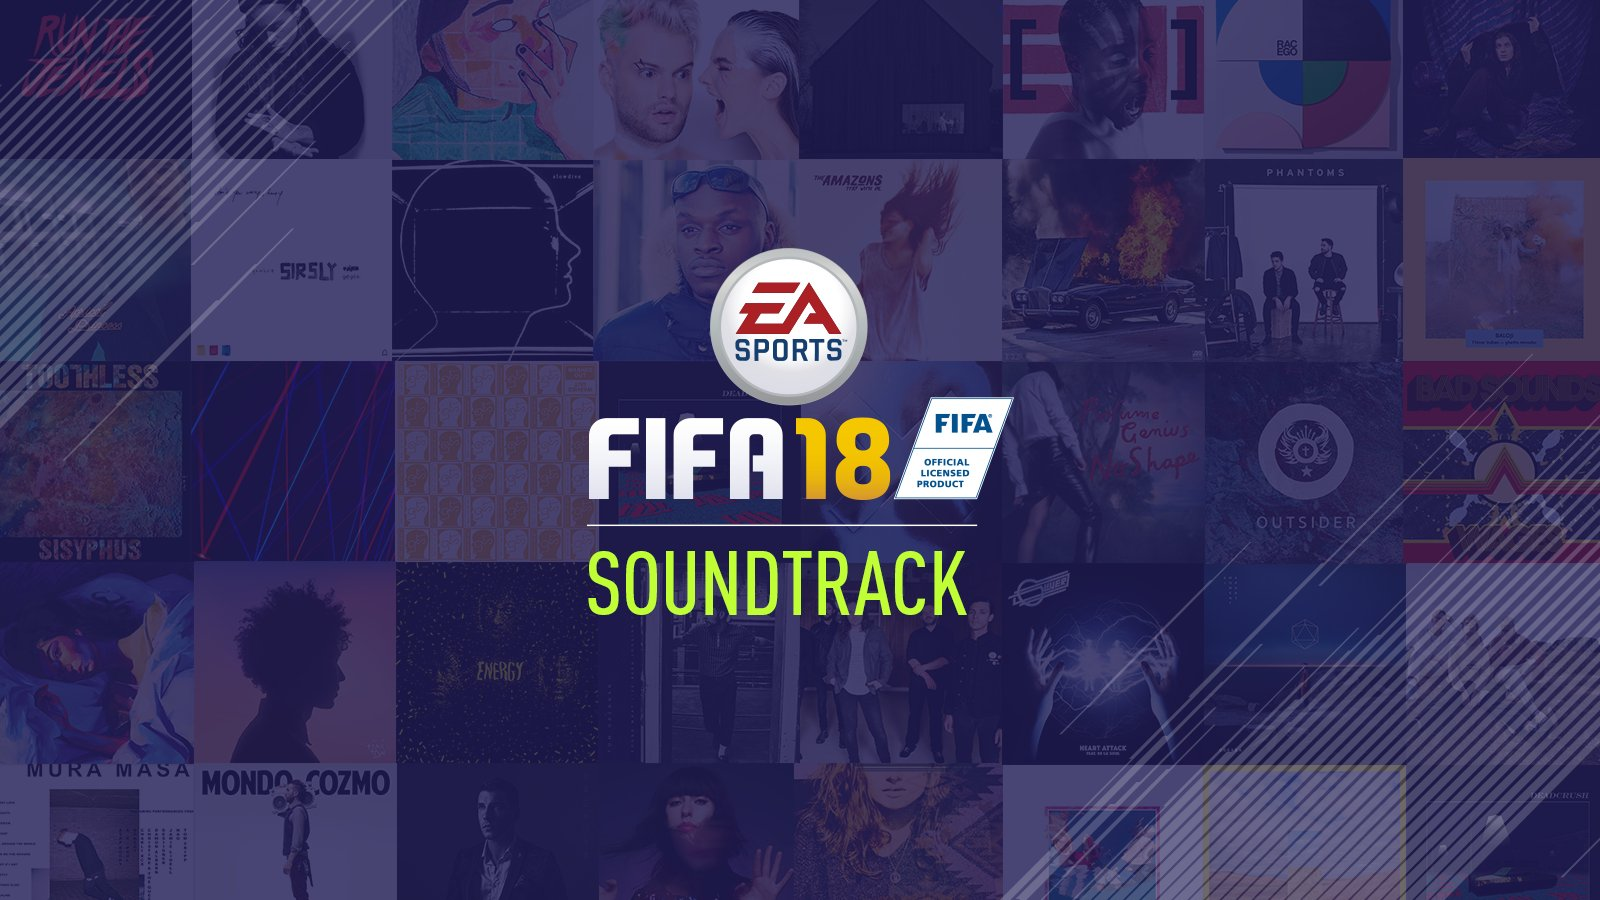 Get ready to hear your new favourite tune...  Listen to the FIFA 18 Soundtrack now!  https://t.co/poUAXTofmw https://t.co/17eoZ0Xly3